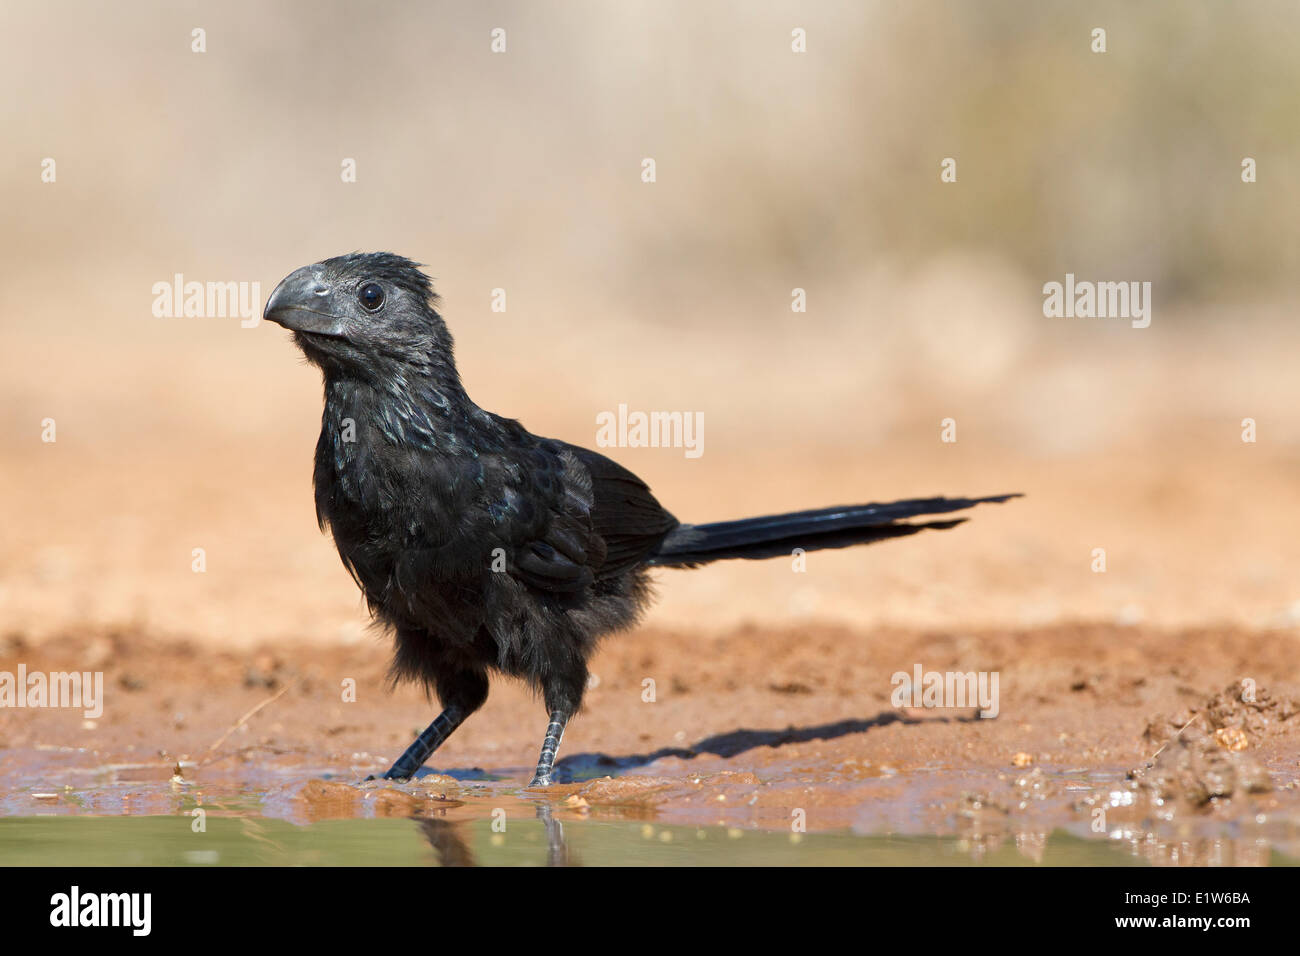 Groove-billed ani (Crotophaga sulcirostris), Santa Clara Ranch, near Edinburg, South Texas. - Stock Image